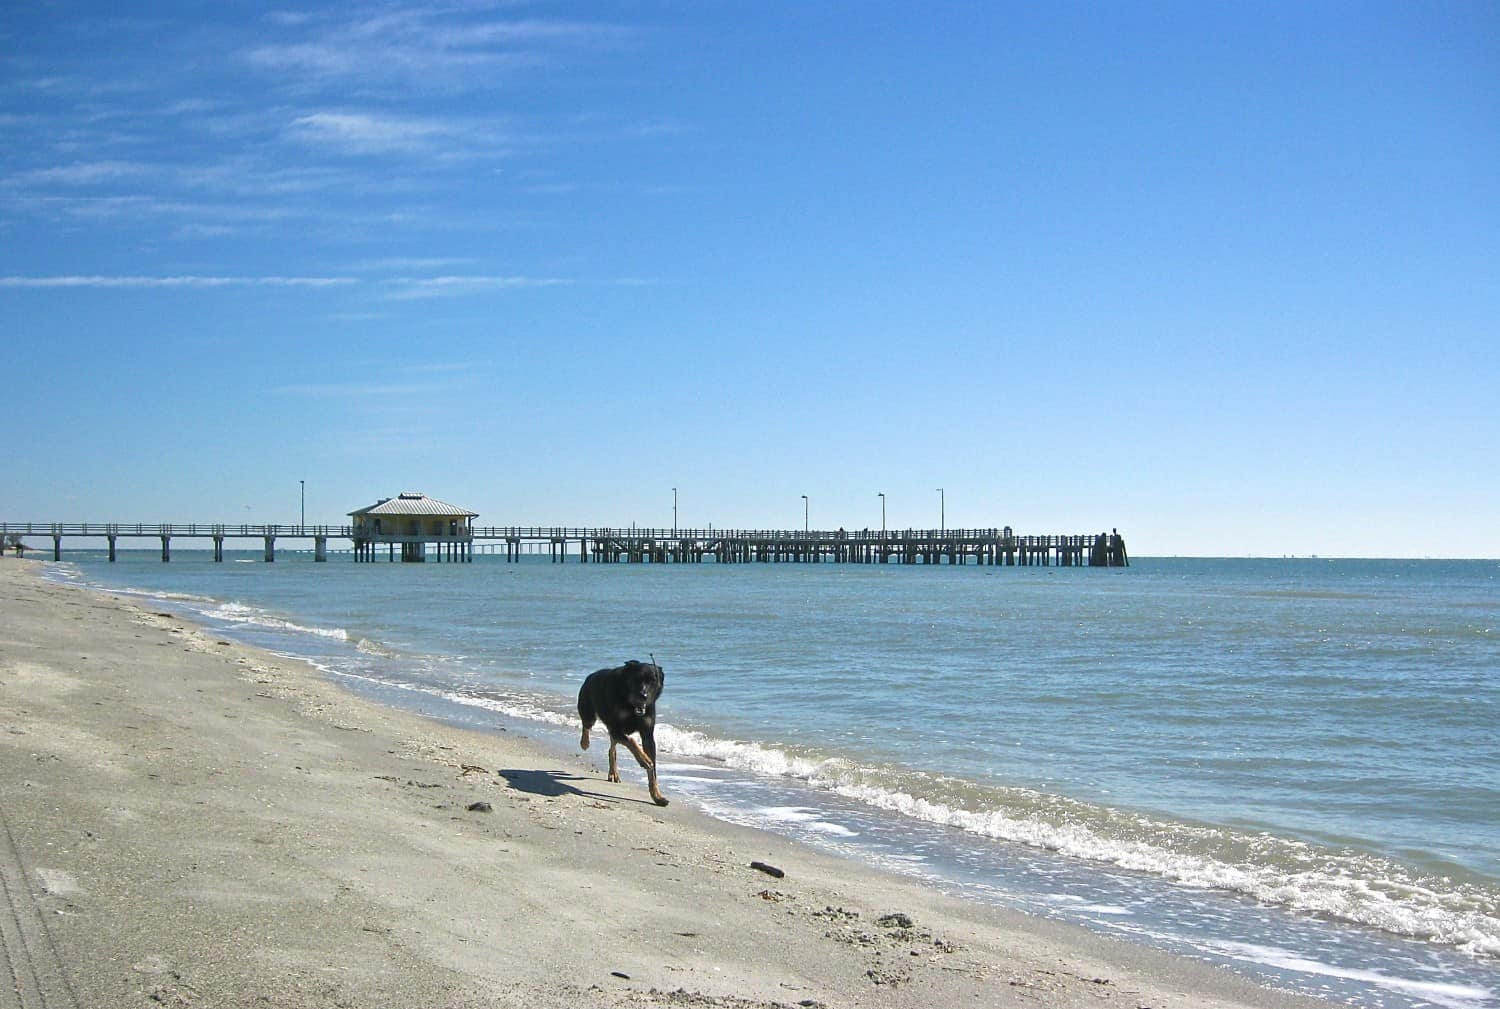 Buster on the Dog Beach - Fort De Soto, FL